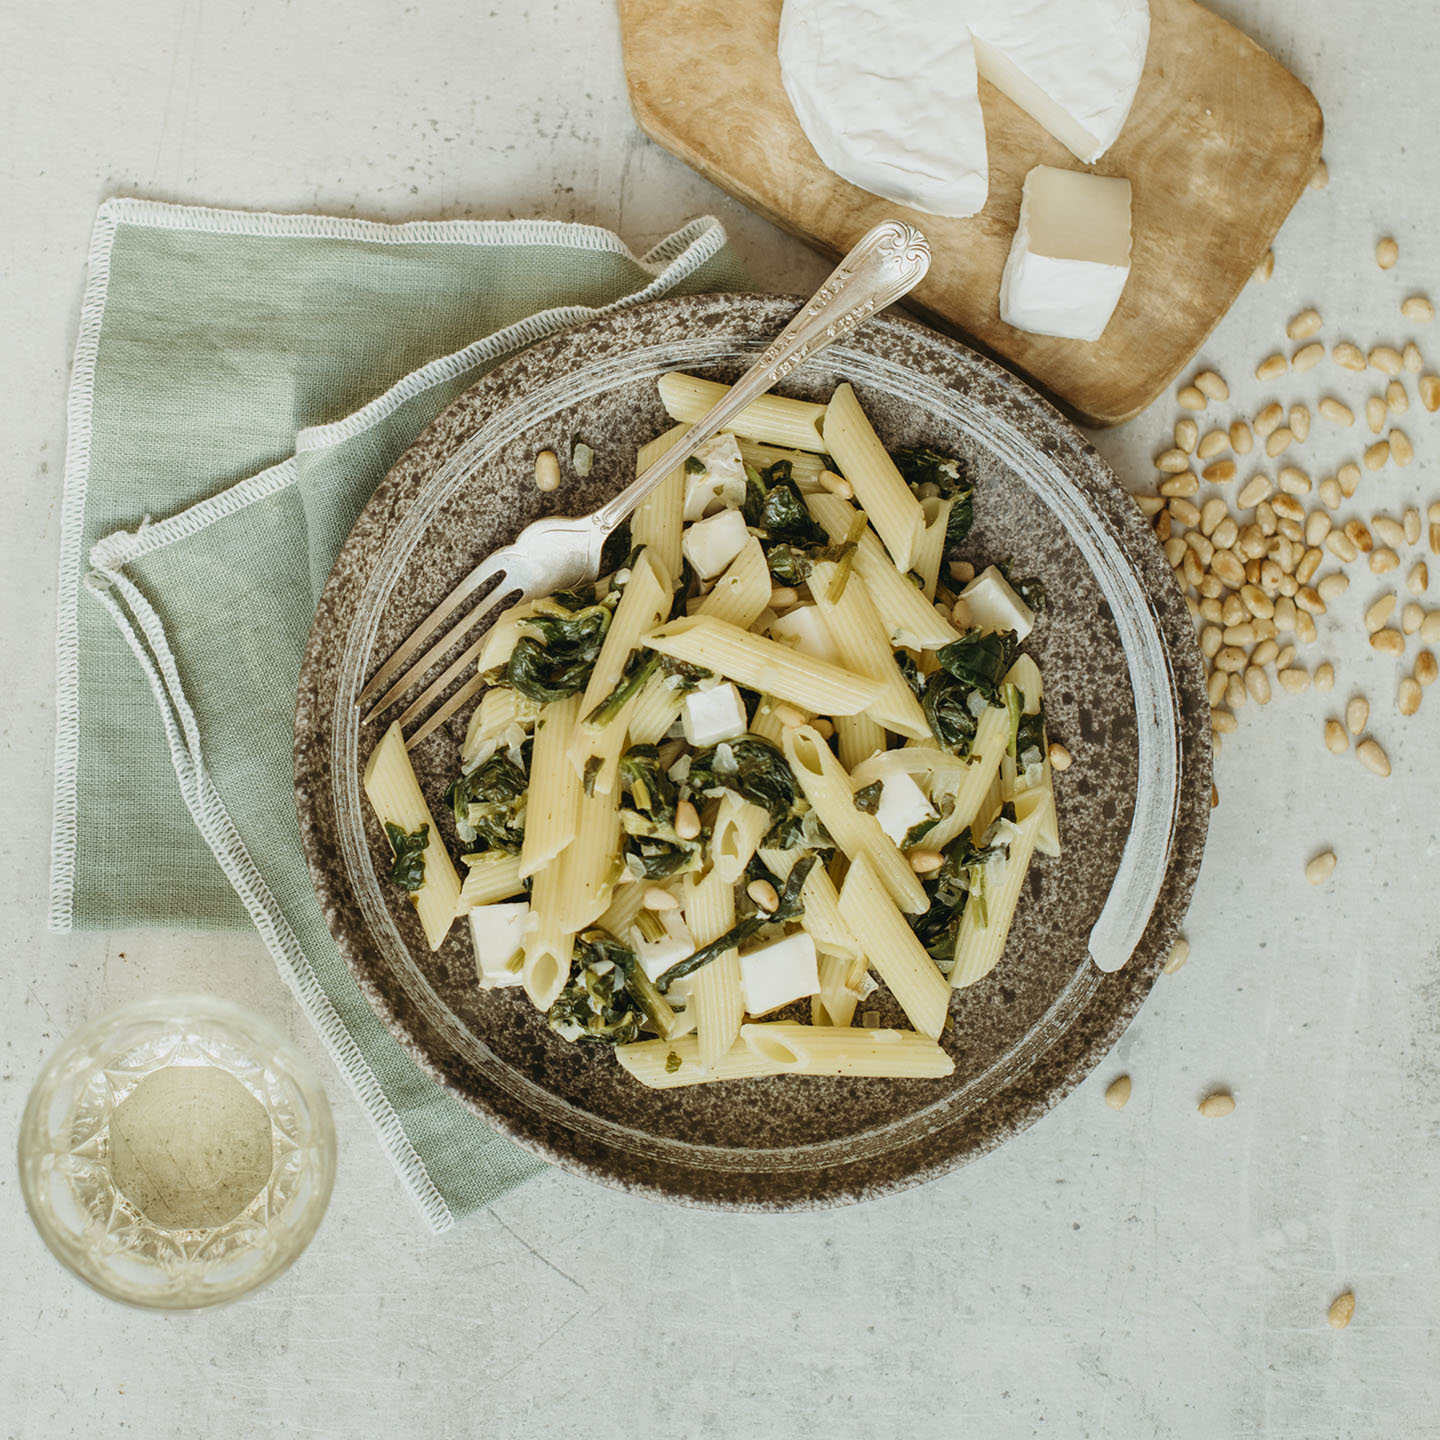 Le Moulin - Les recettes - Penne with goat's cheese and spinach